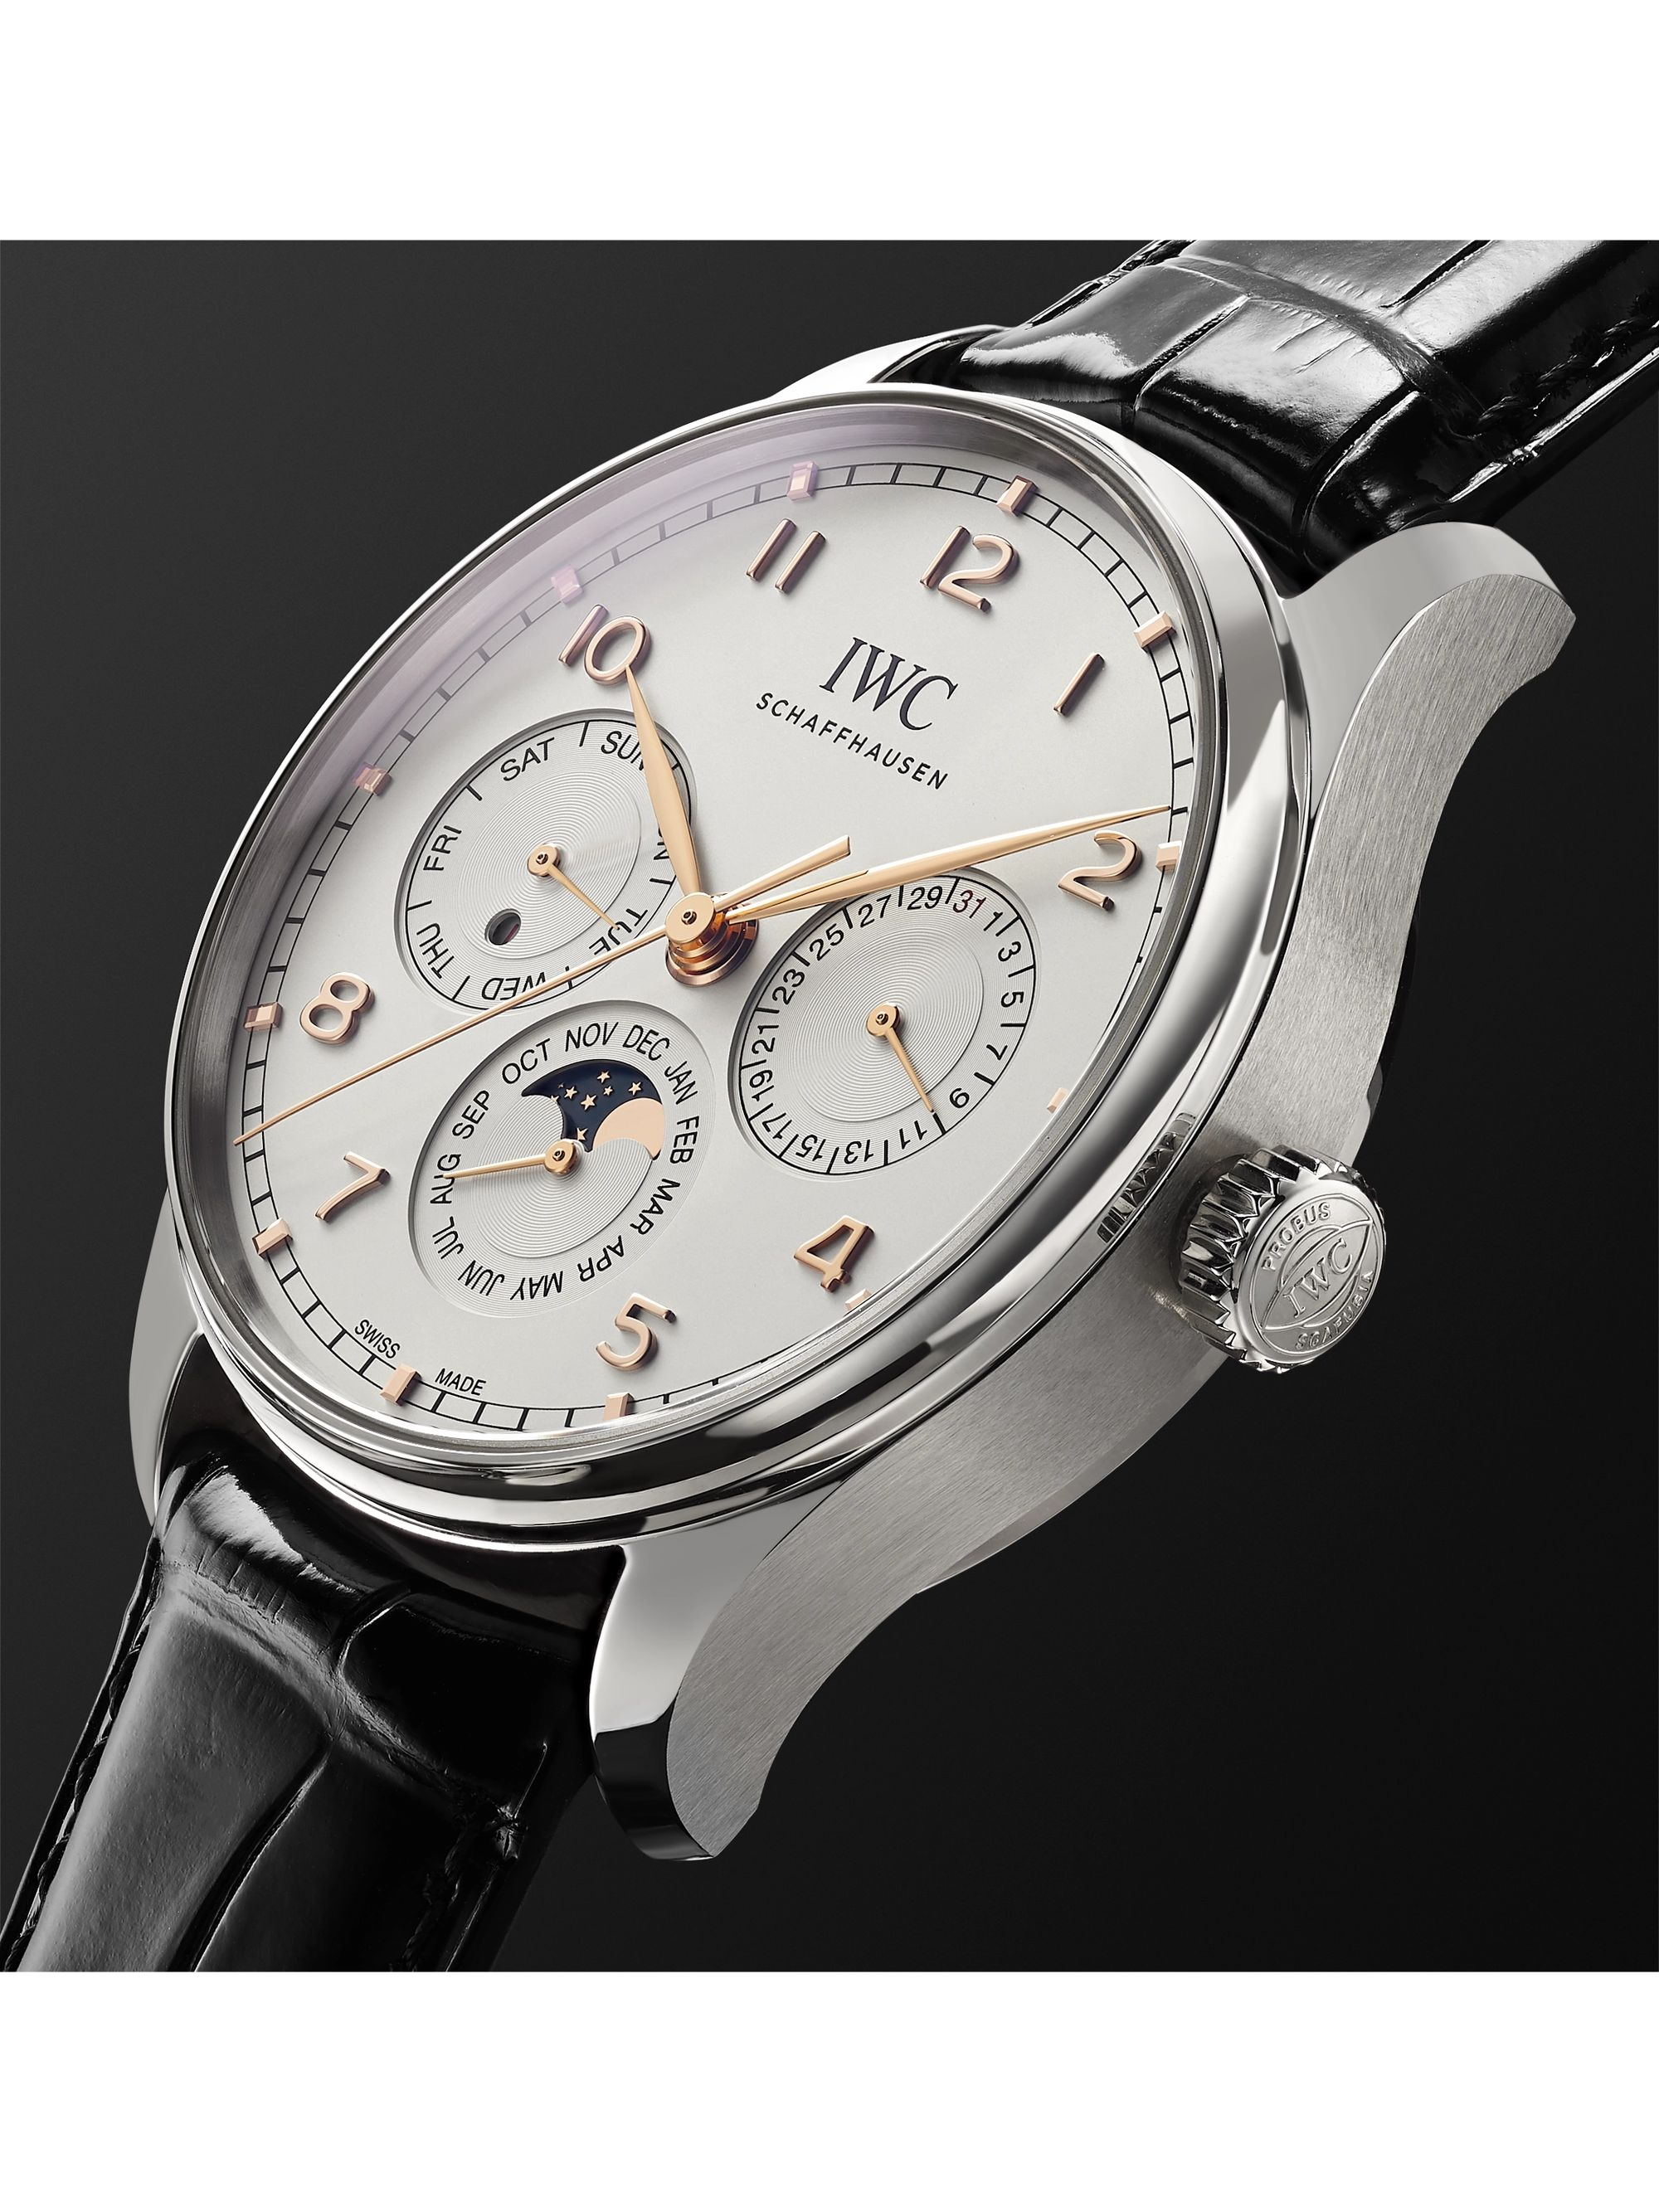 IWC SCHAFFHAUSEN Portugieser Perpetual Calendar Automatic 42.4mm Stainless Steel and Alligator Watch, Ref. No. IW344203